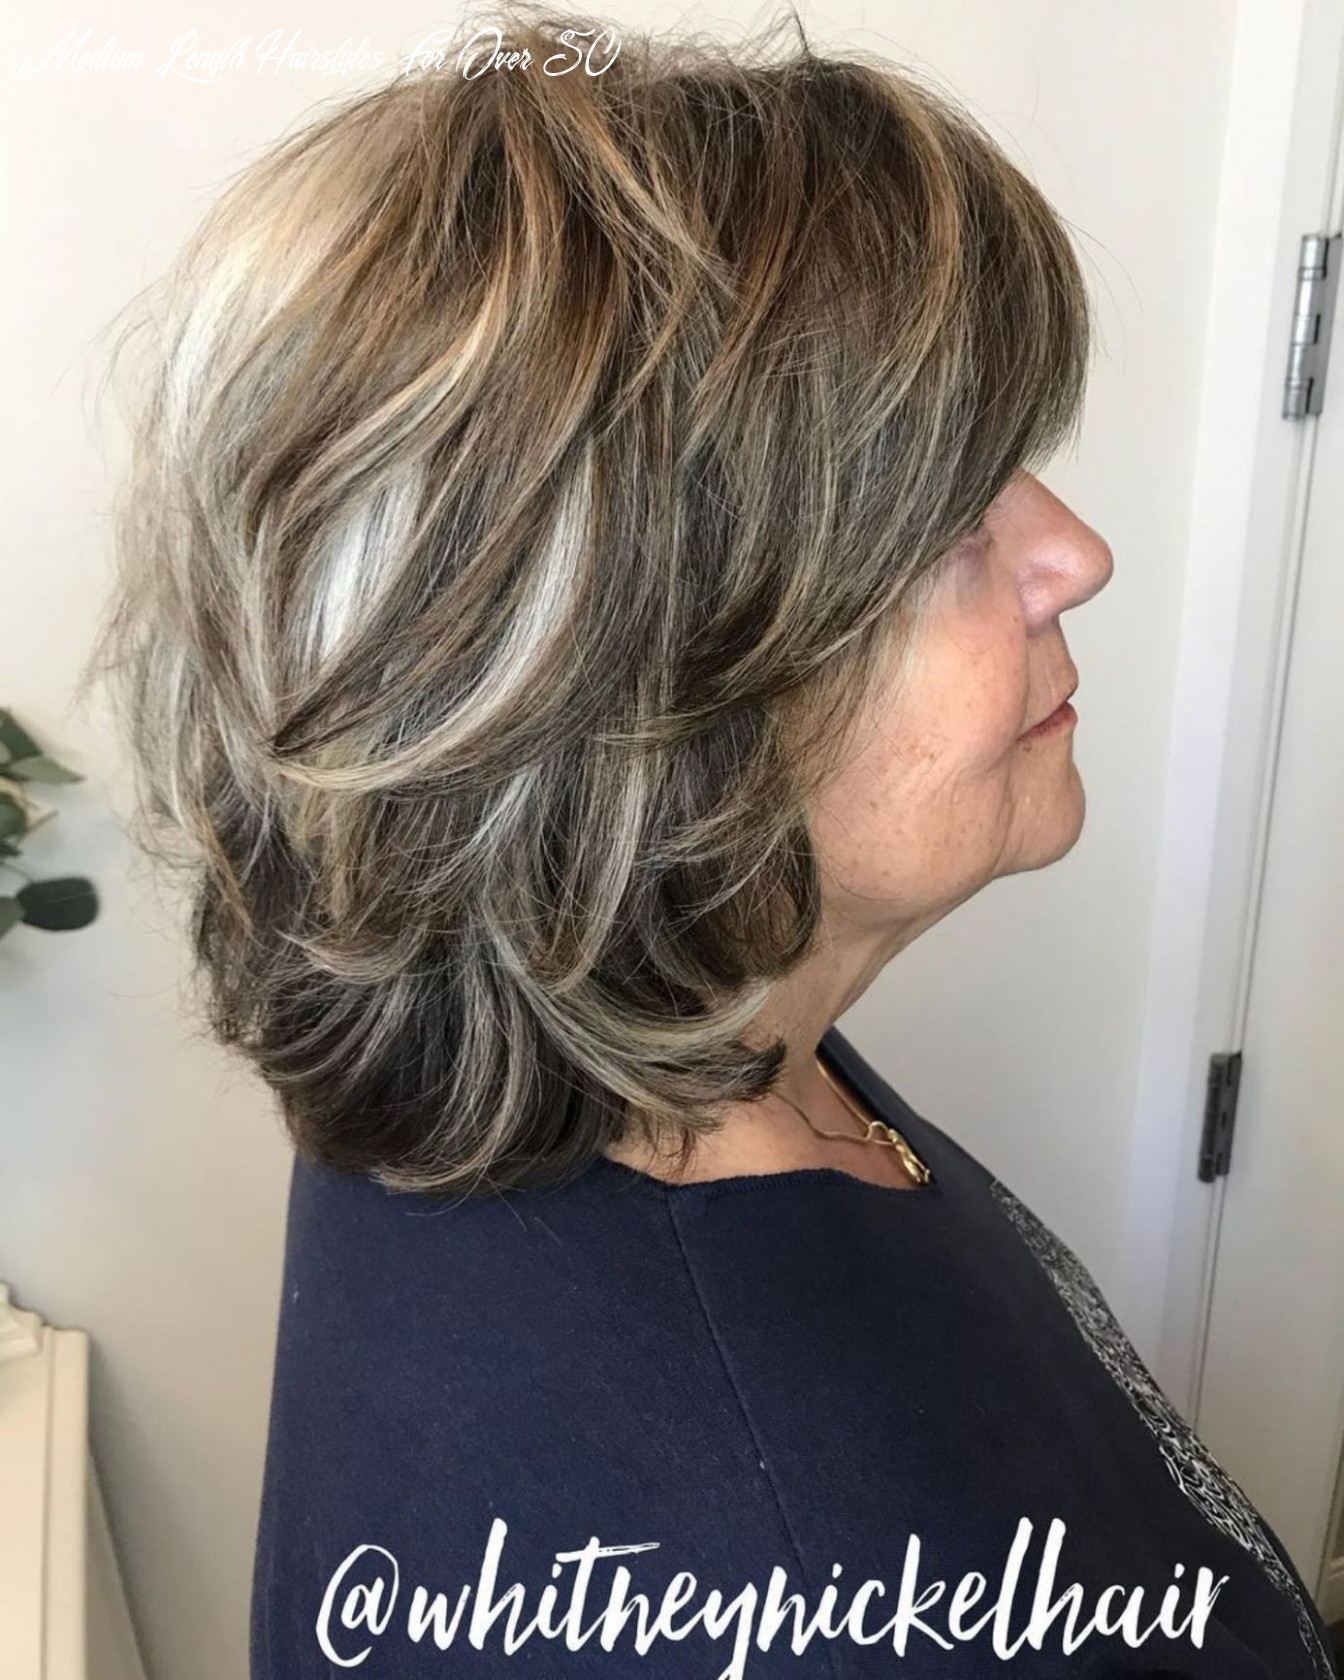 10 best modern hairstyles and haircuts for women over 10 | thick